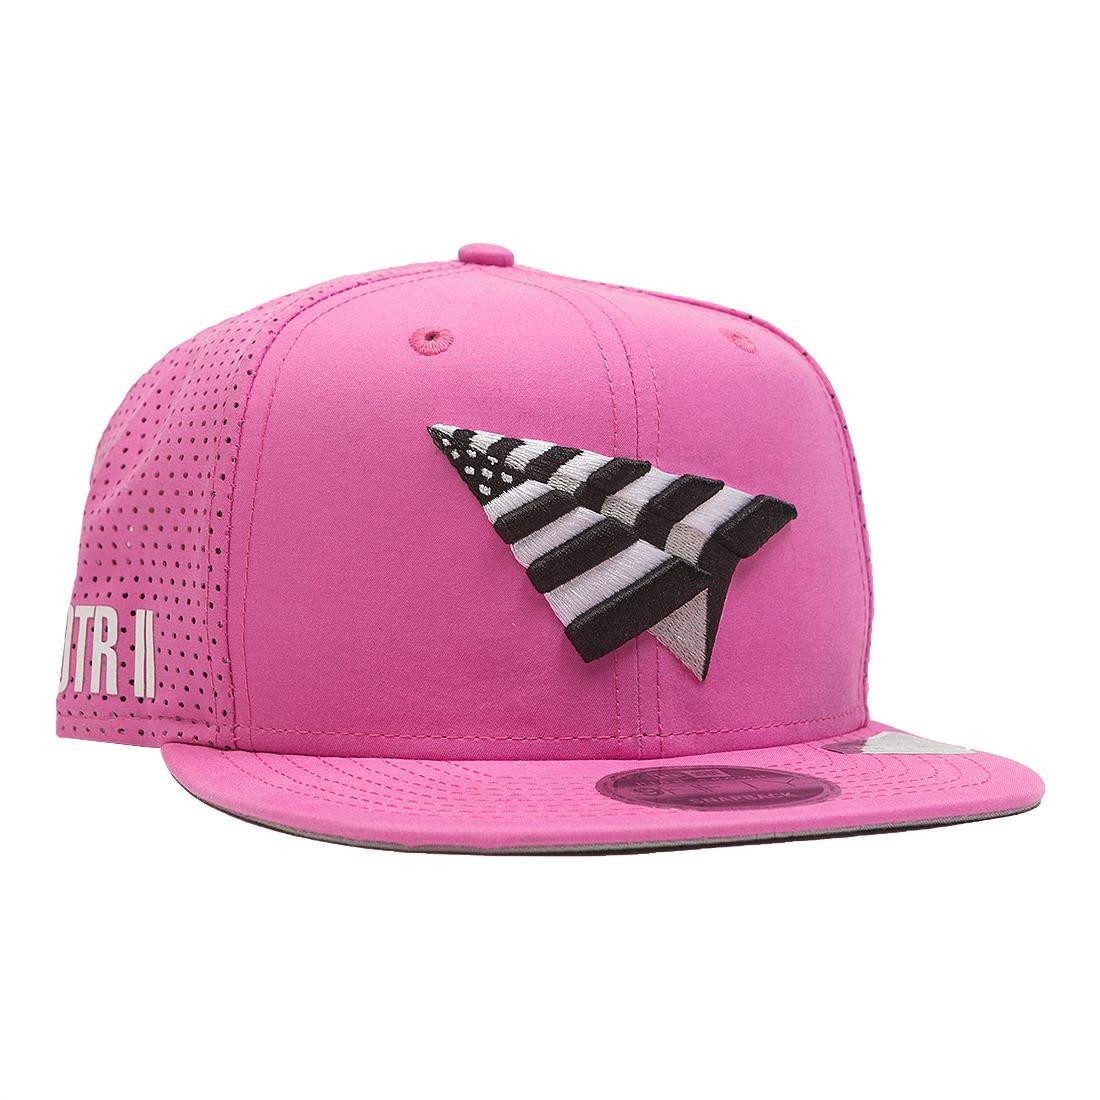 Paper Planes The Crown 2 Snapback Cap (pink)